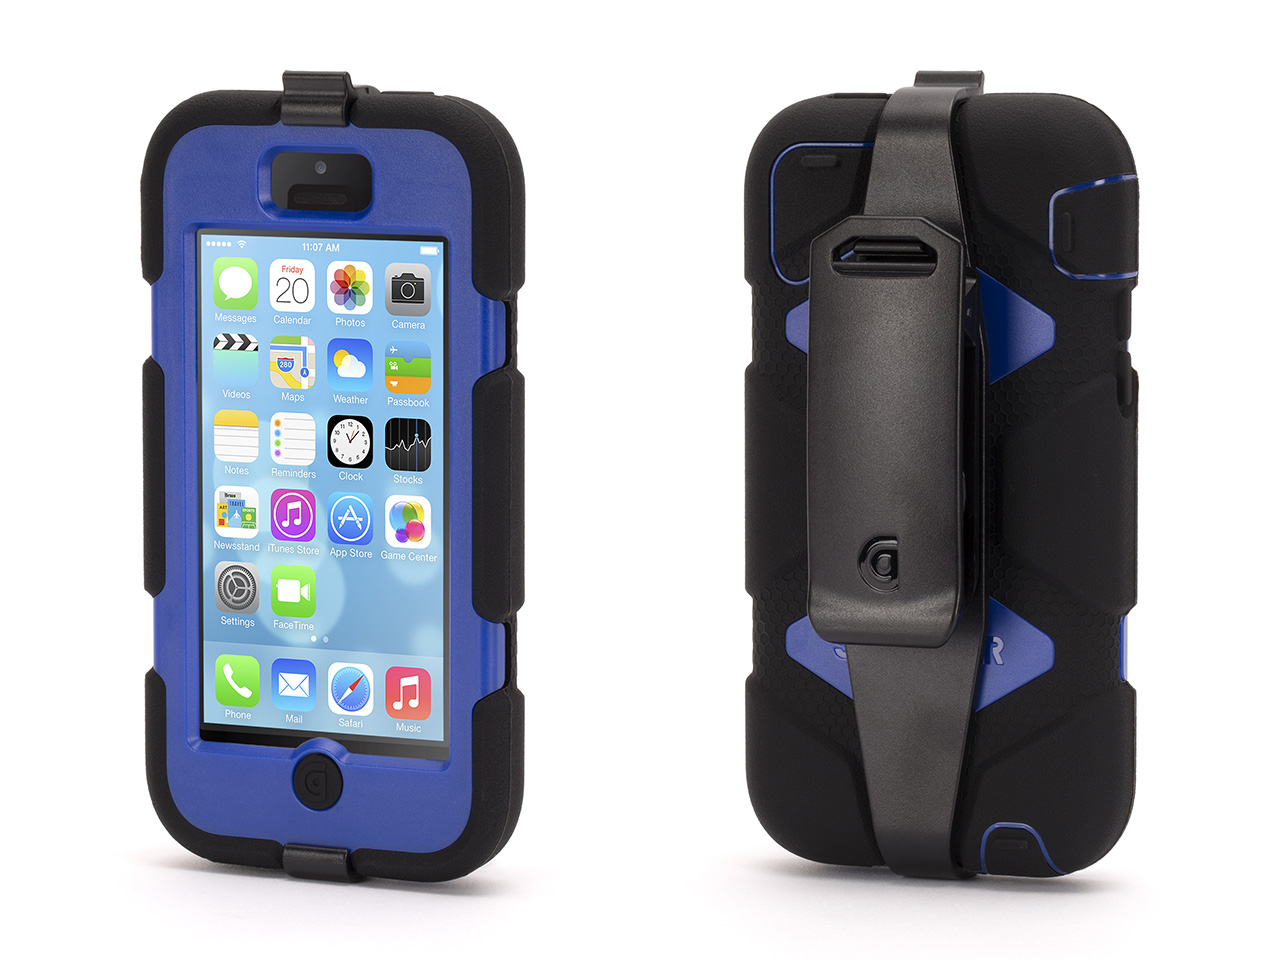 Simply put, Survivor is the most protective case we've ever built.Designed and tested to meet or exceed US Department of Defense Standard 810F, Griffin's Survivor Extreme-Duty Case is built from the inside out to protect your iPhone from extreme conditions ... dirt, sand, rain, shock, vibration and a host of other environmental factors.Survivor is built on a shatter-resistant polycarbonate frame clad in rugged, shock-absorbing silicone. A built-in screen protector seals your Multi-Touch display from the outside environment, while hinged plugs seal the dock connector, headphone port, hold switch and volume controls. A detachable heavy-duty clip secures your iPhone to a belt or bag strap.How well does Survivor perform? You can view videos and test results online at www.griffintechnology.com/survivor.